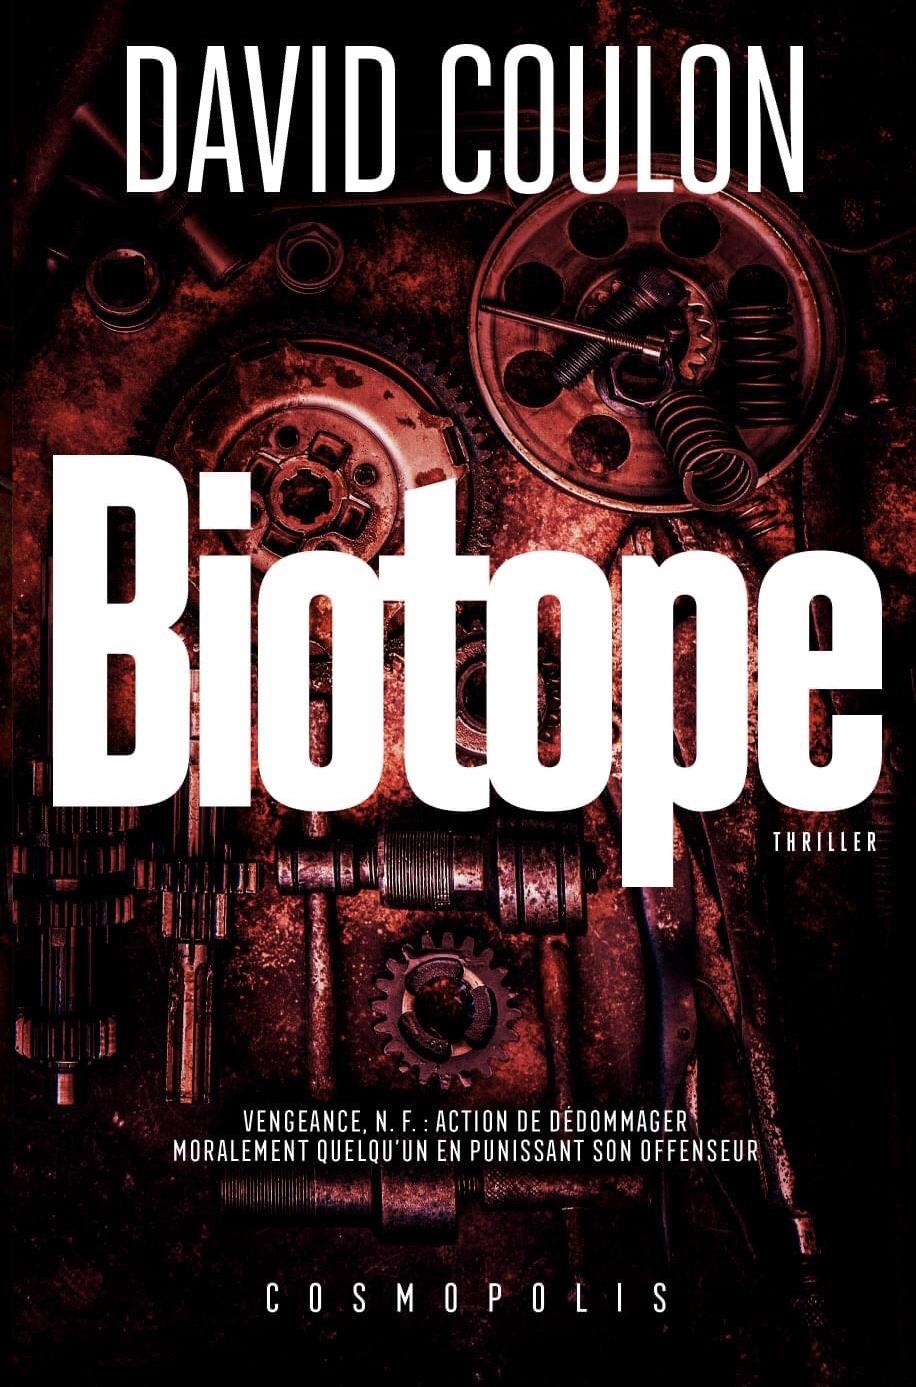 biotope.coulon